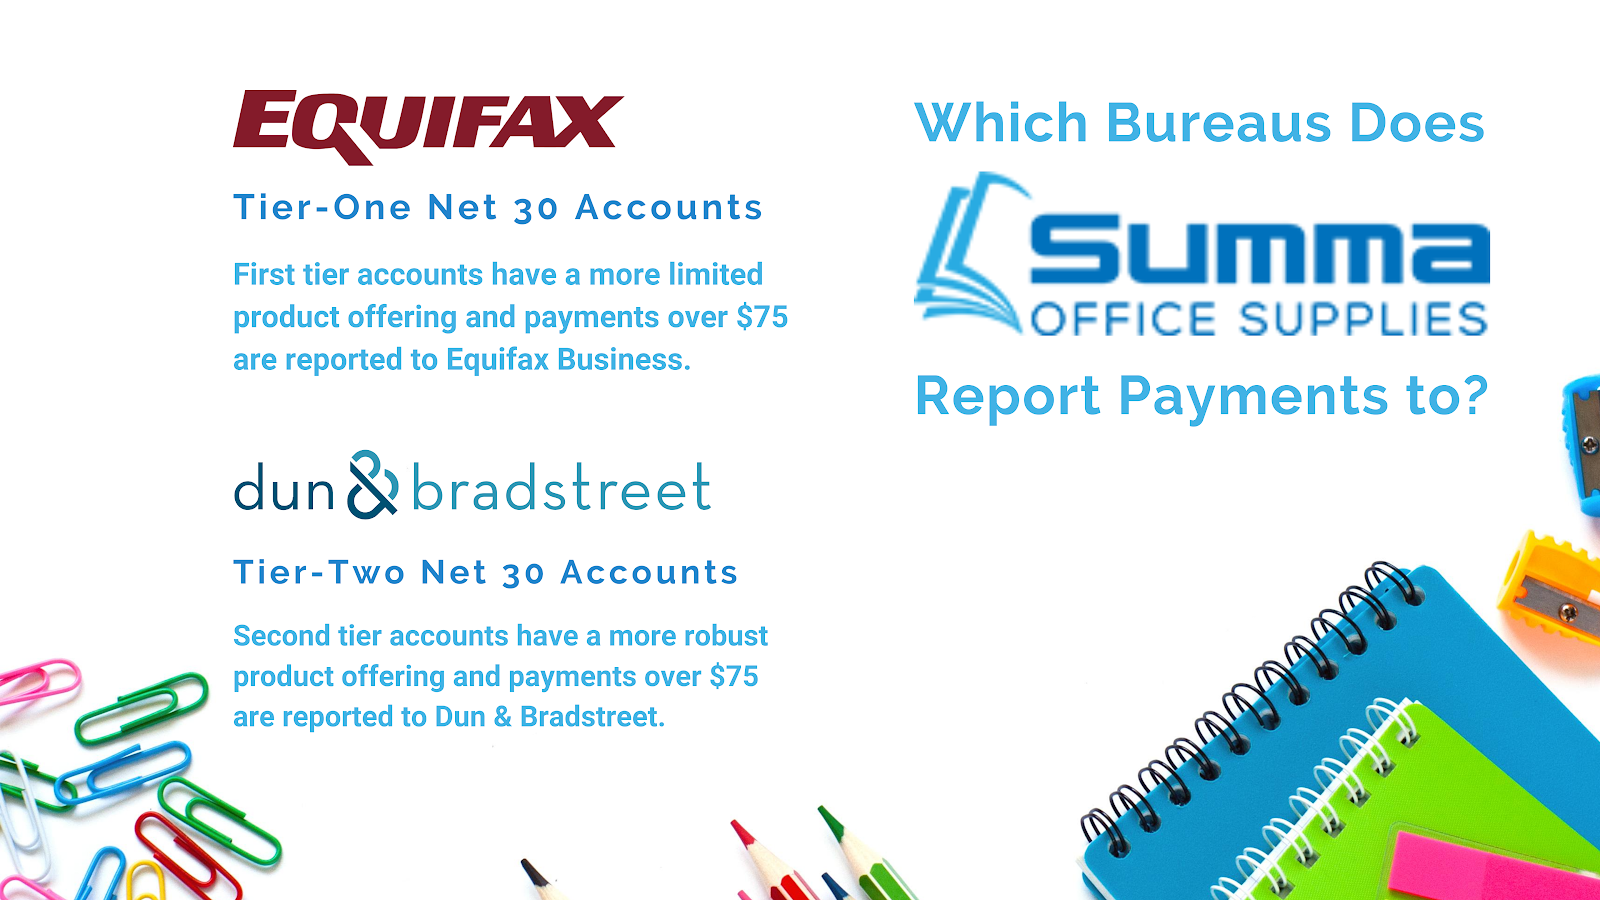 Who does Summa Office Supplies Report to?